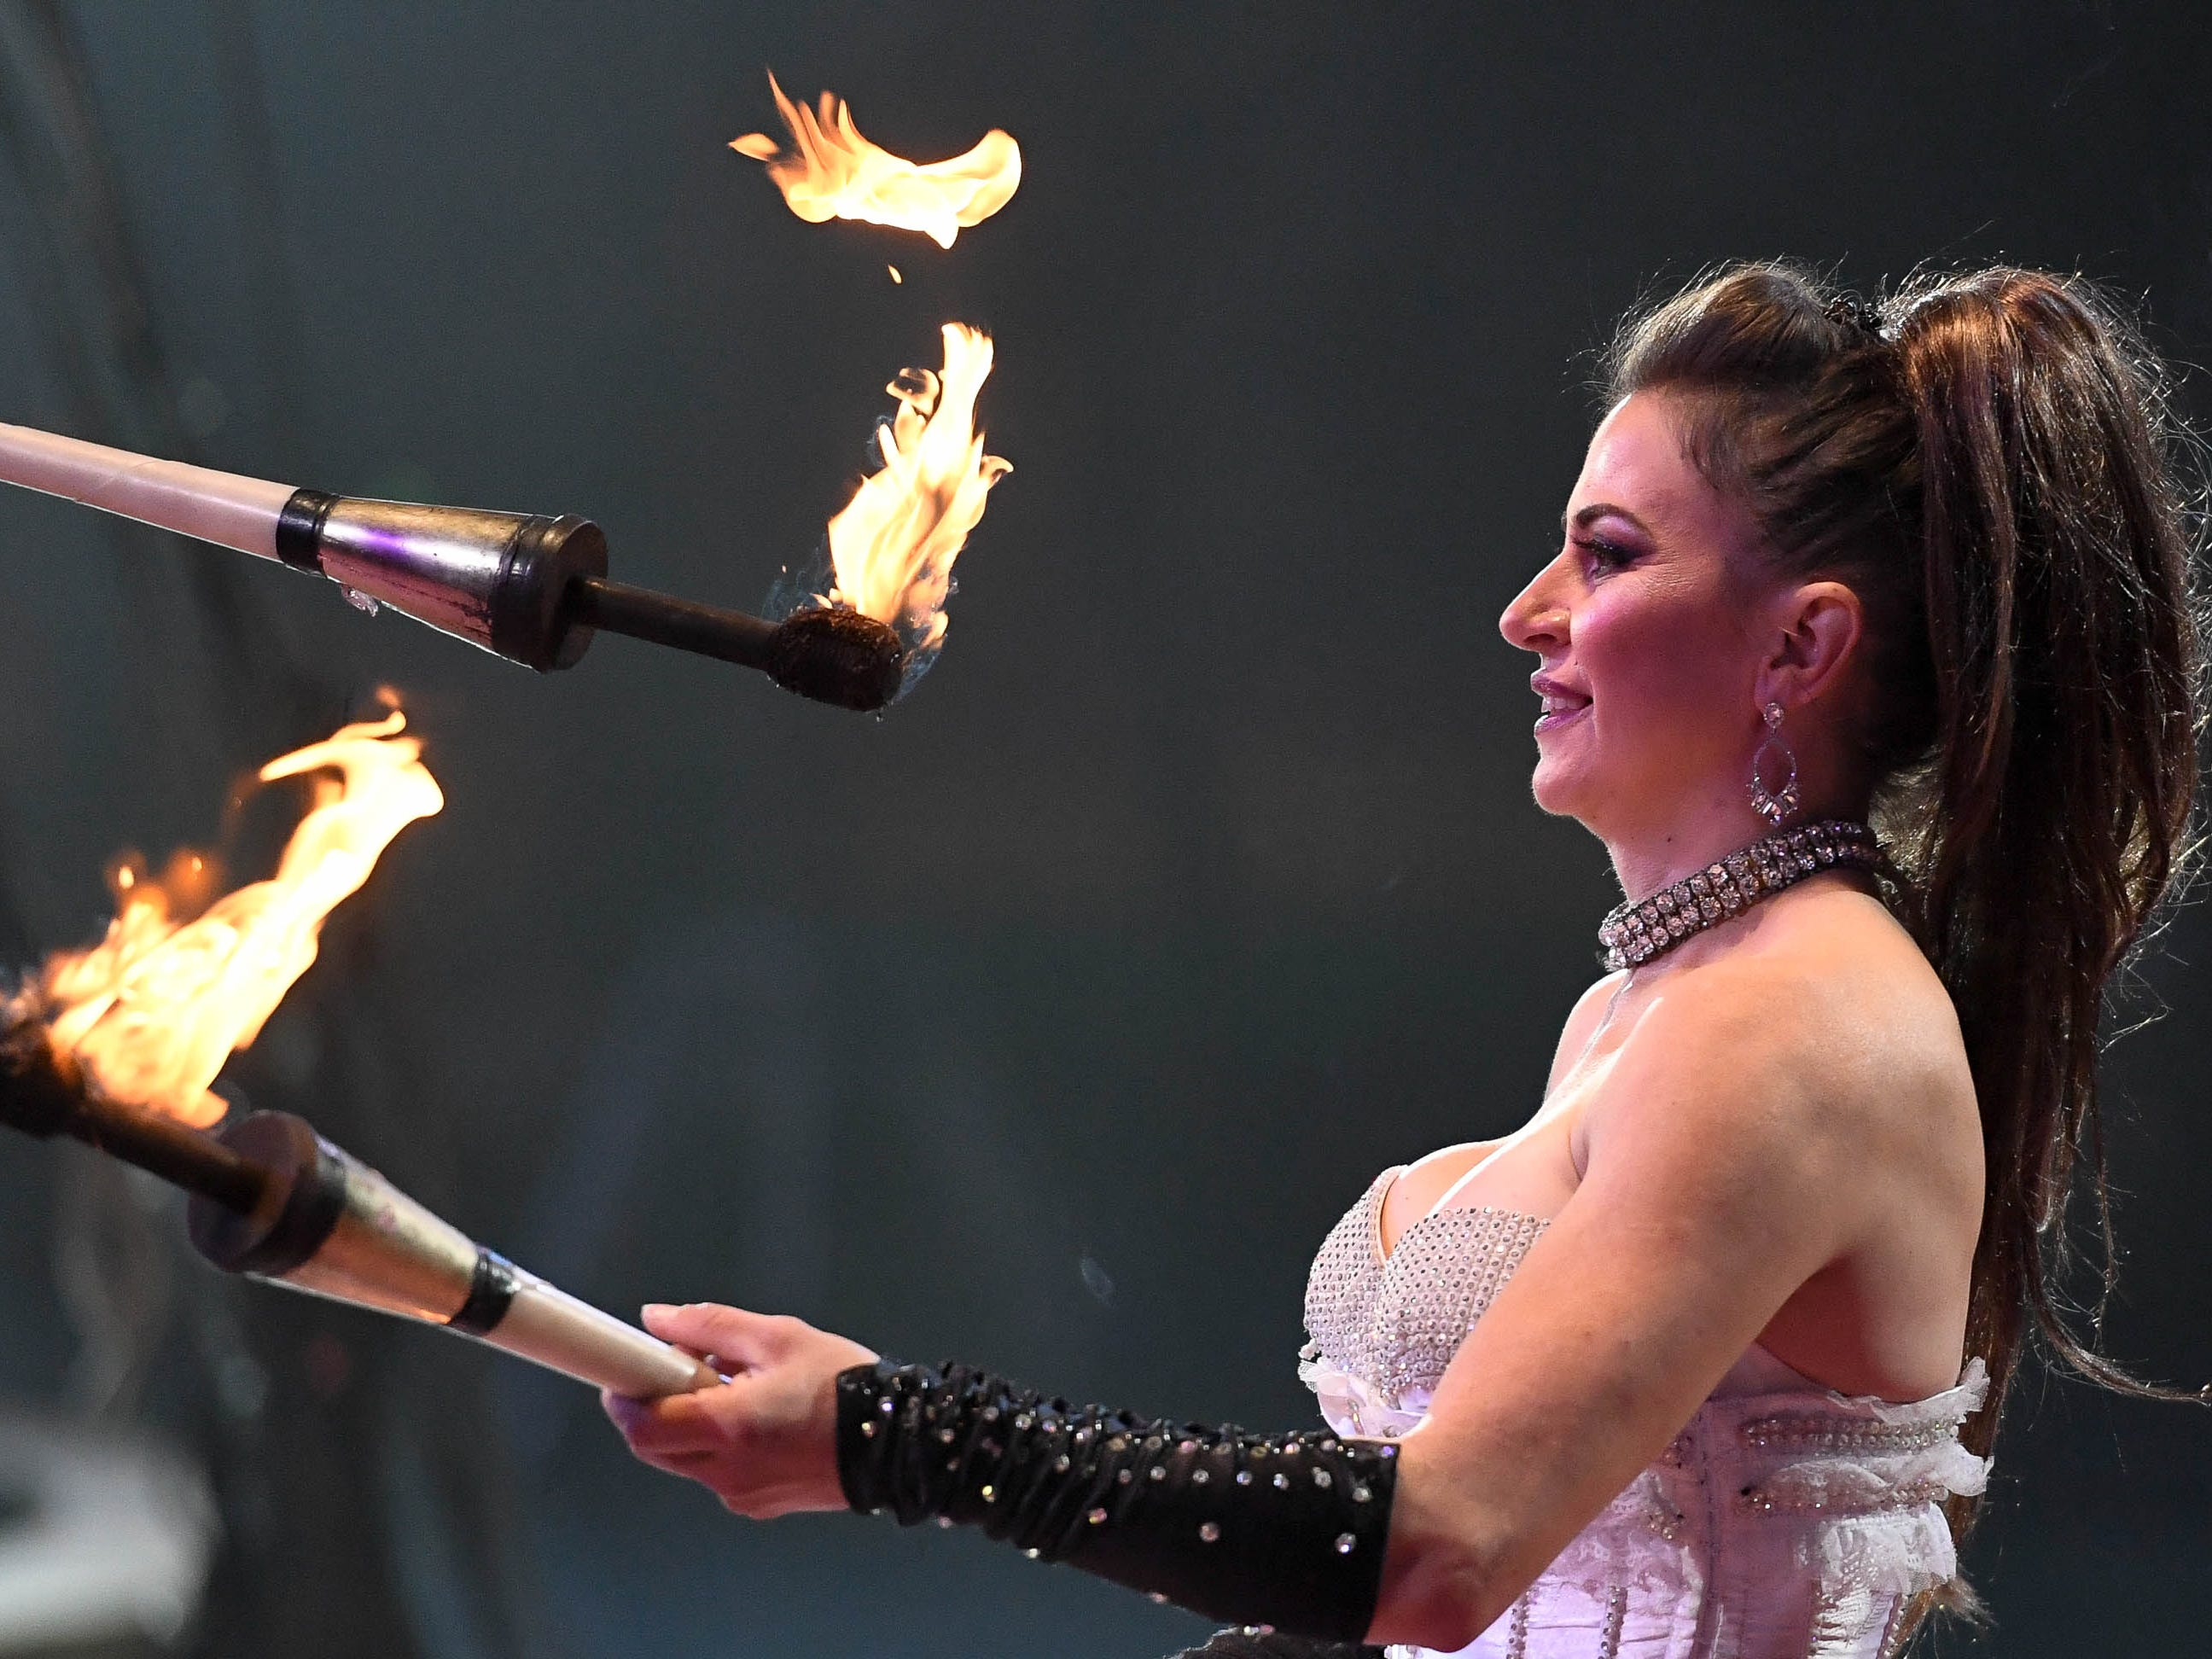 Mychelle Omar displays her juggling skills with flaming torches during the 85th annual Hadi Shrine Circus at the Evansville Ford Center Friday, November 23, 2018.